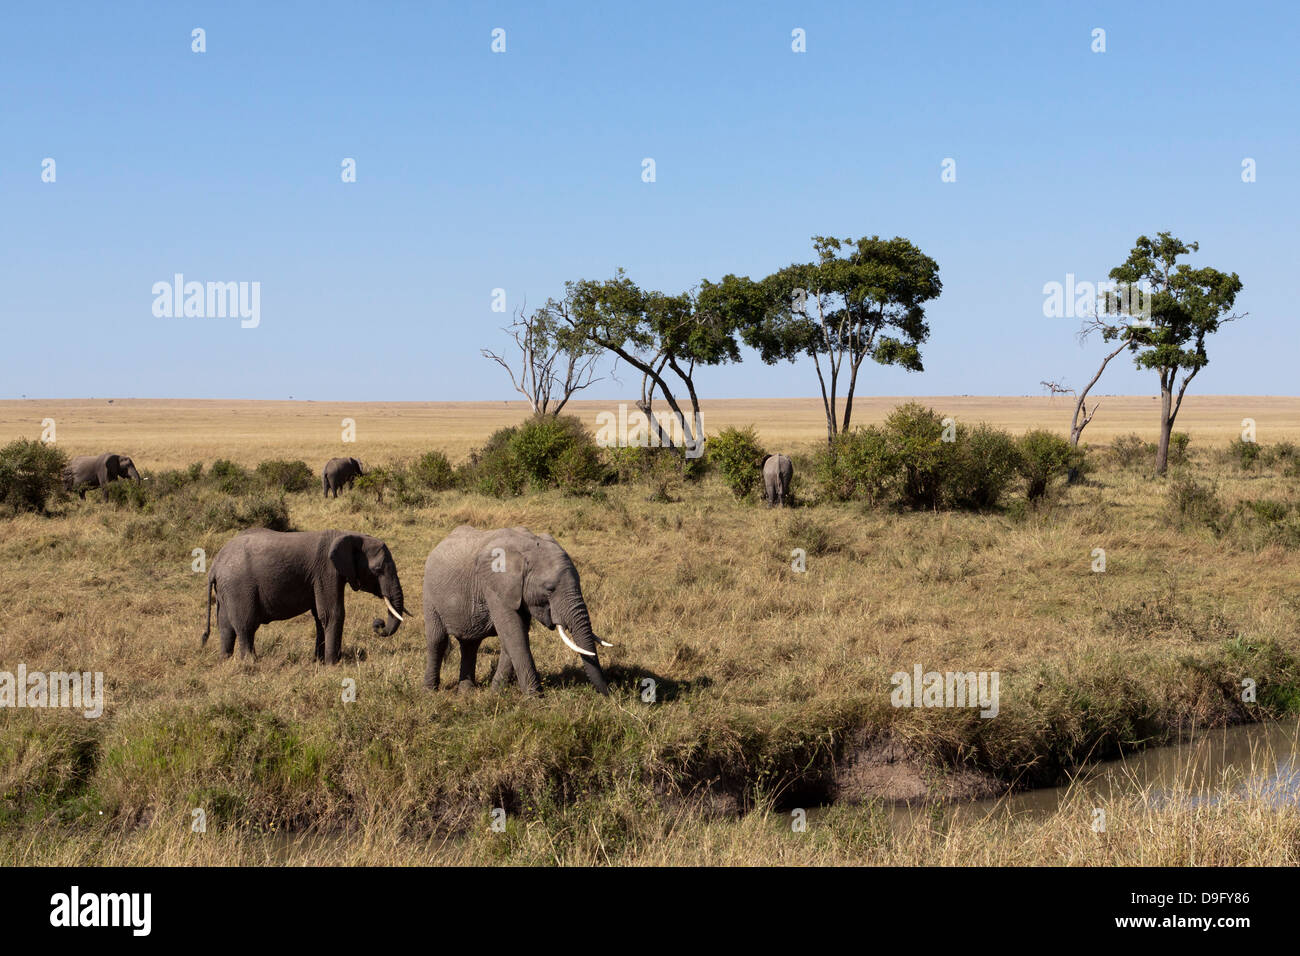 A herd of African elephants (Loxodonta africana) at a watering hole, Masai Mara, Kenya - Stock Image